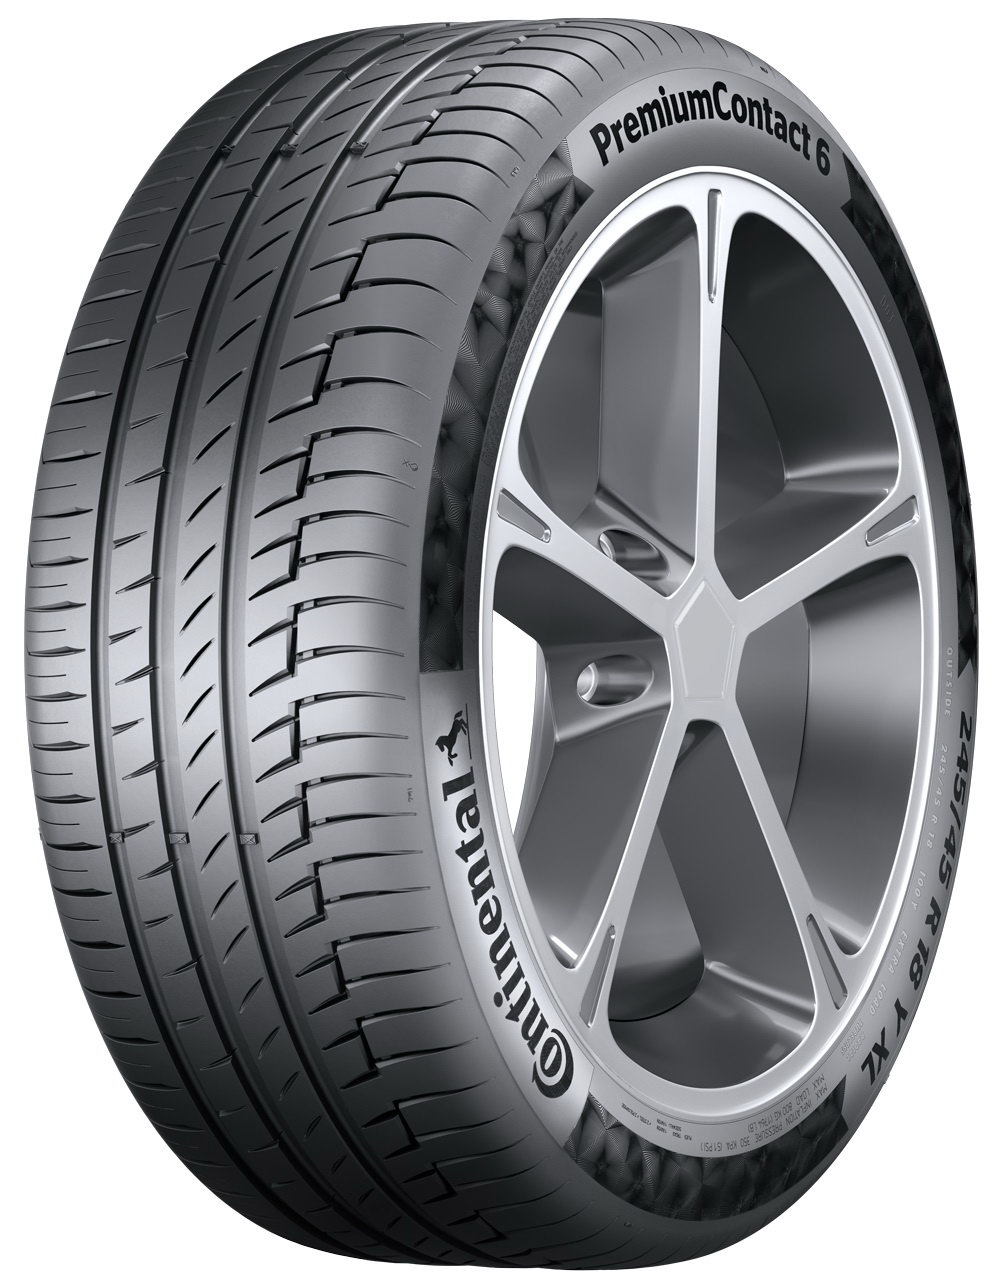 Anvelope vara CONTINENTAL PREMIUM CONTACT 6 205/50 R17 89V